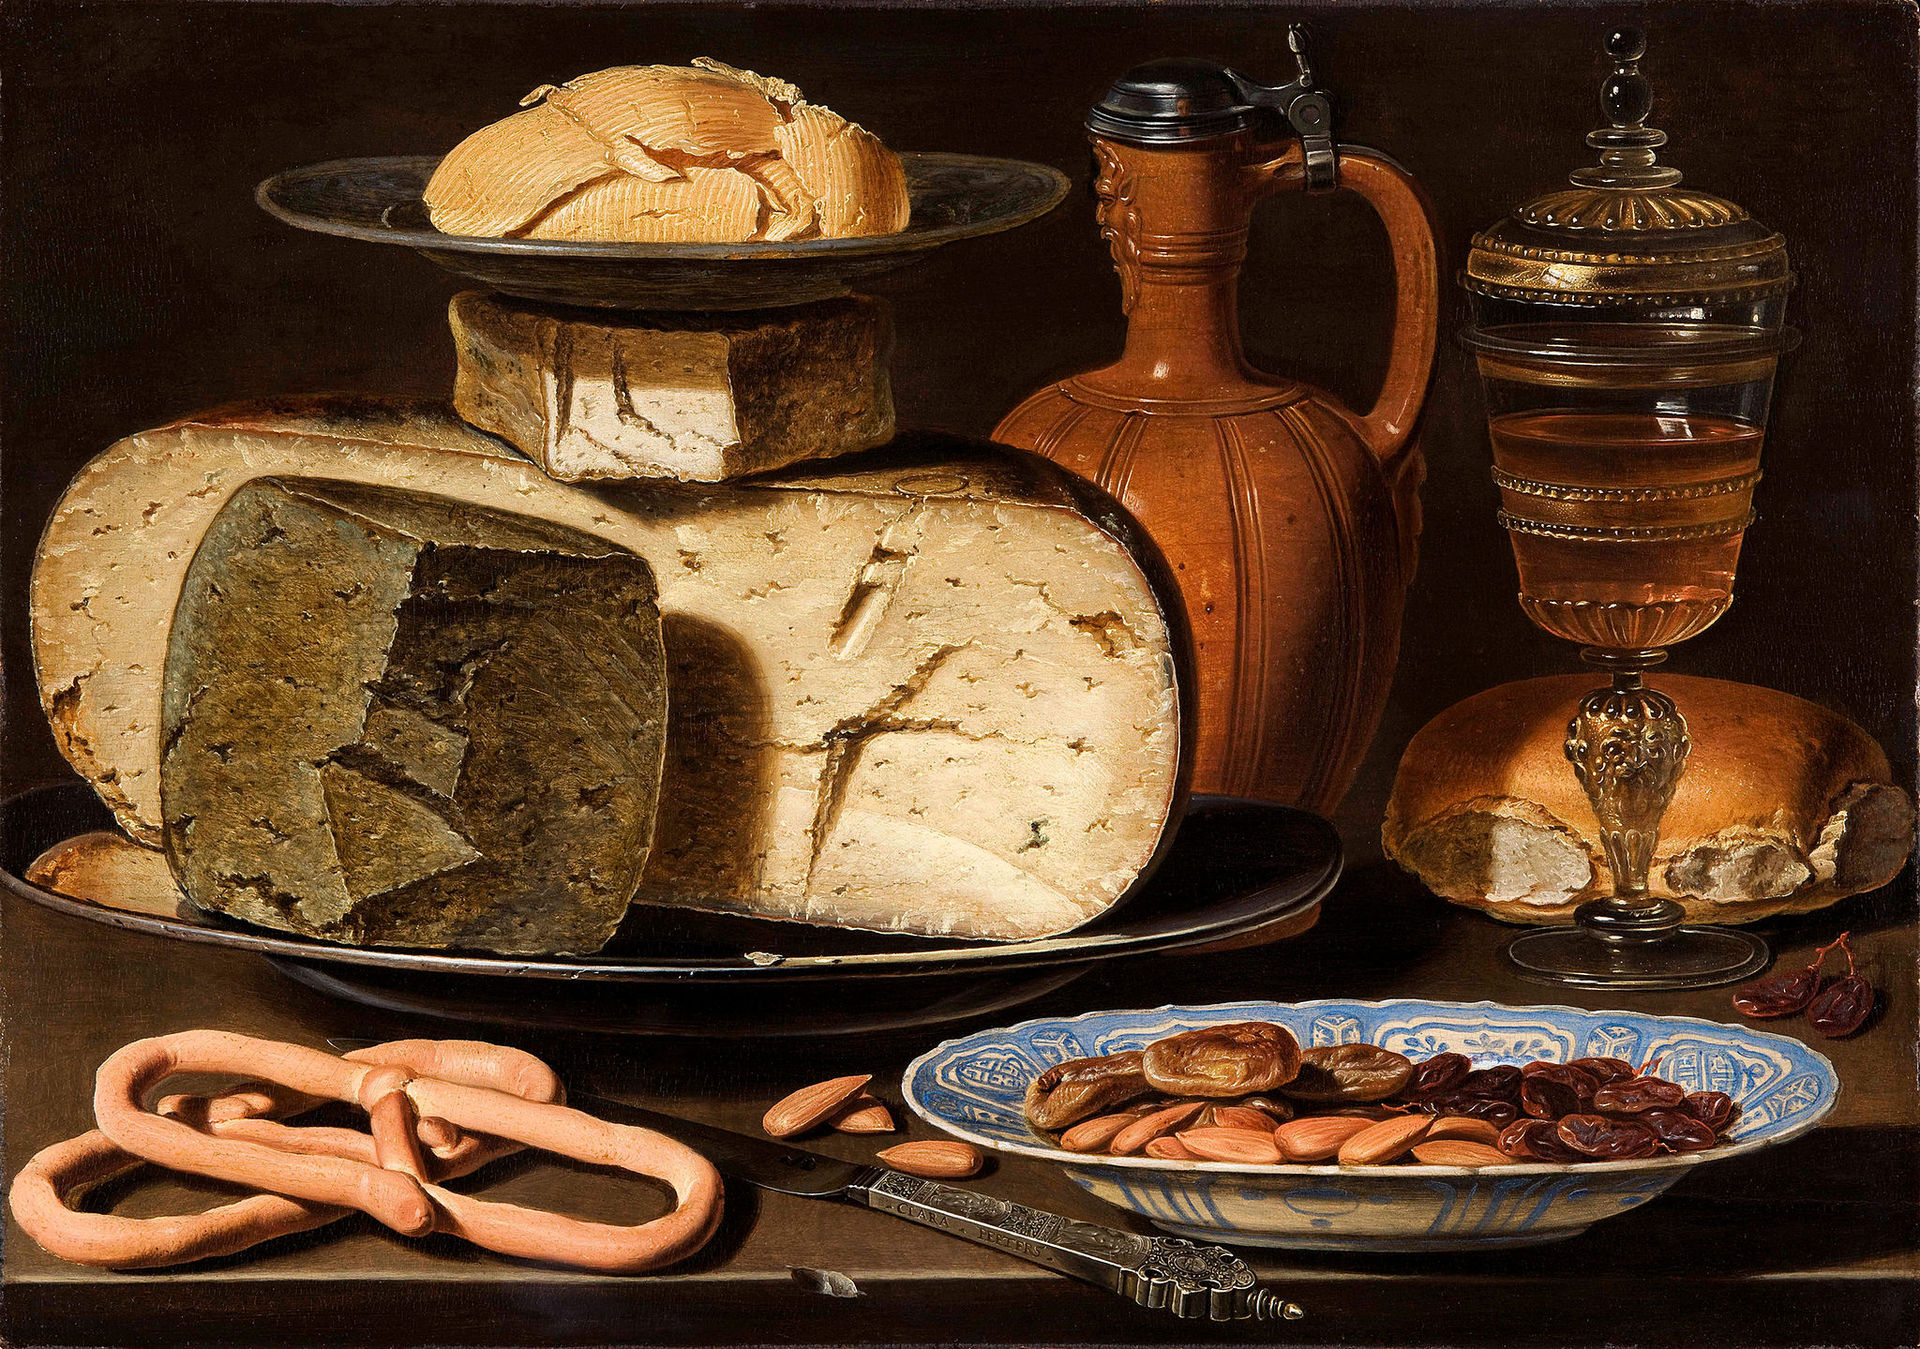 Clara Peeters, (1589-1657) Still Life with Cheeses, Almonds and Pretzels, c. 1615